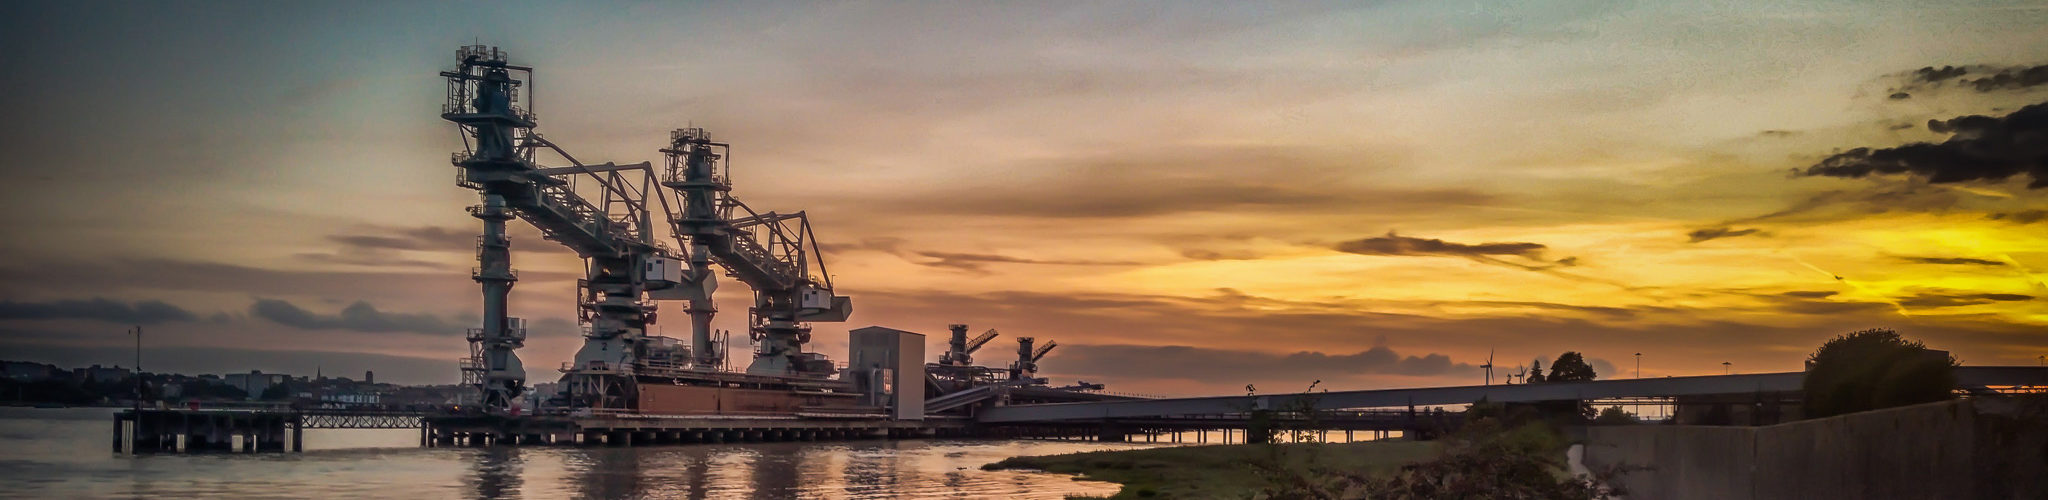 Tilbury Power Station Jetty at sunset